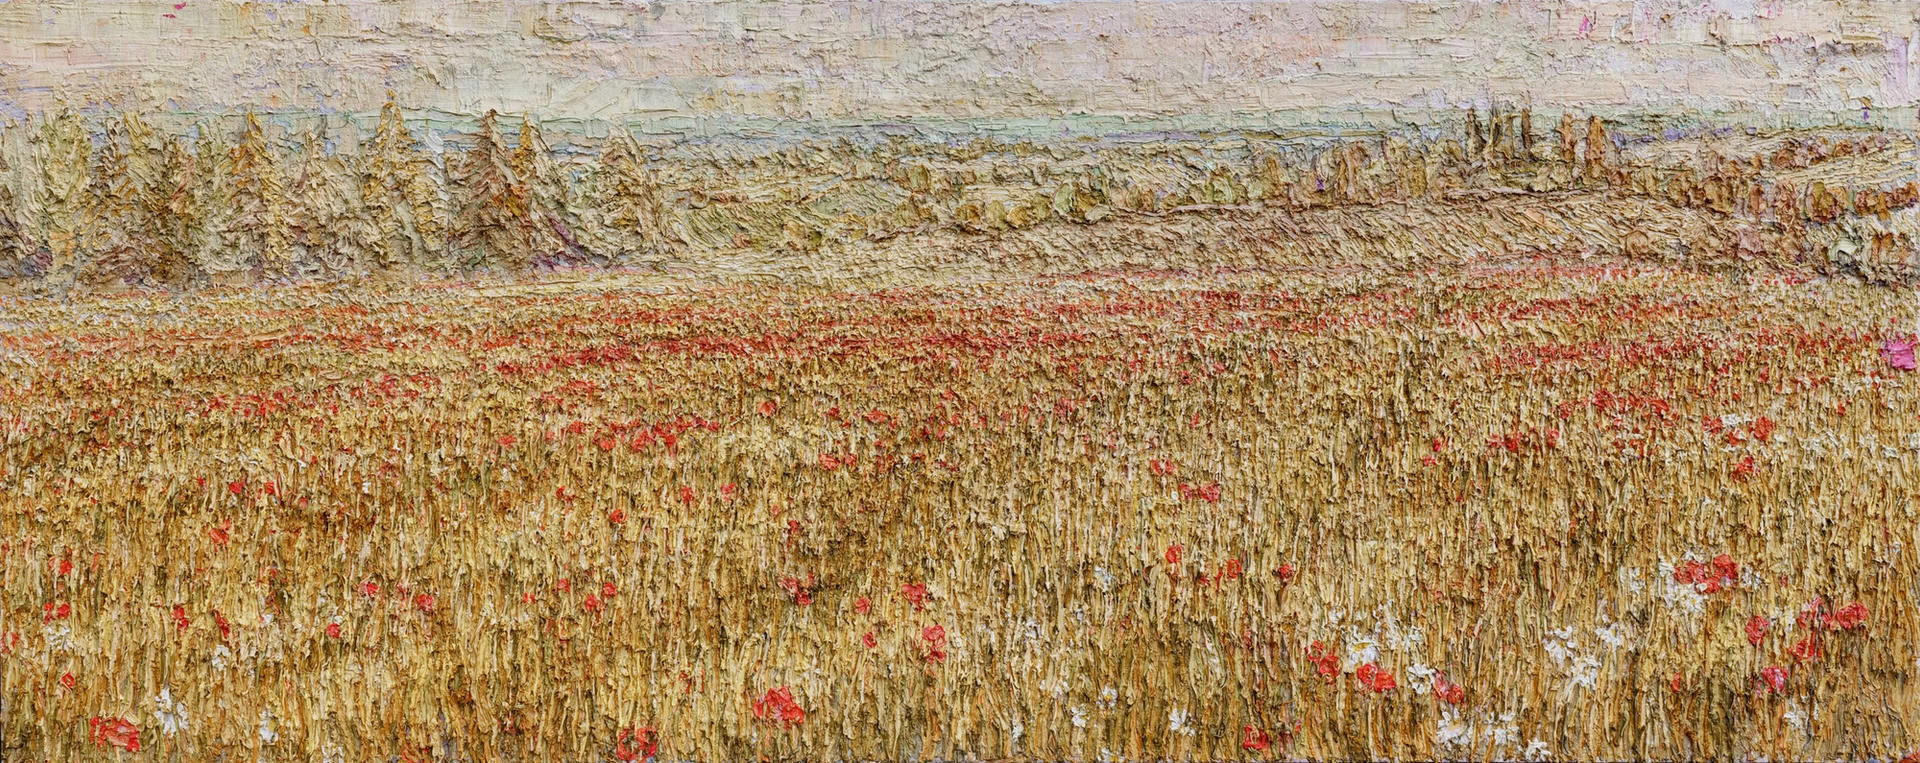 'Poppies, Stearsby, North Yorkshire, 2020